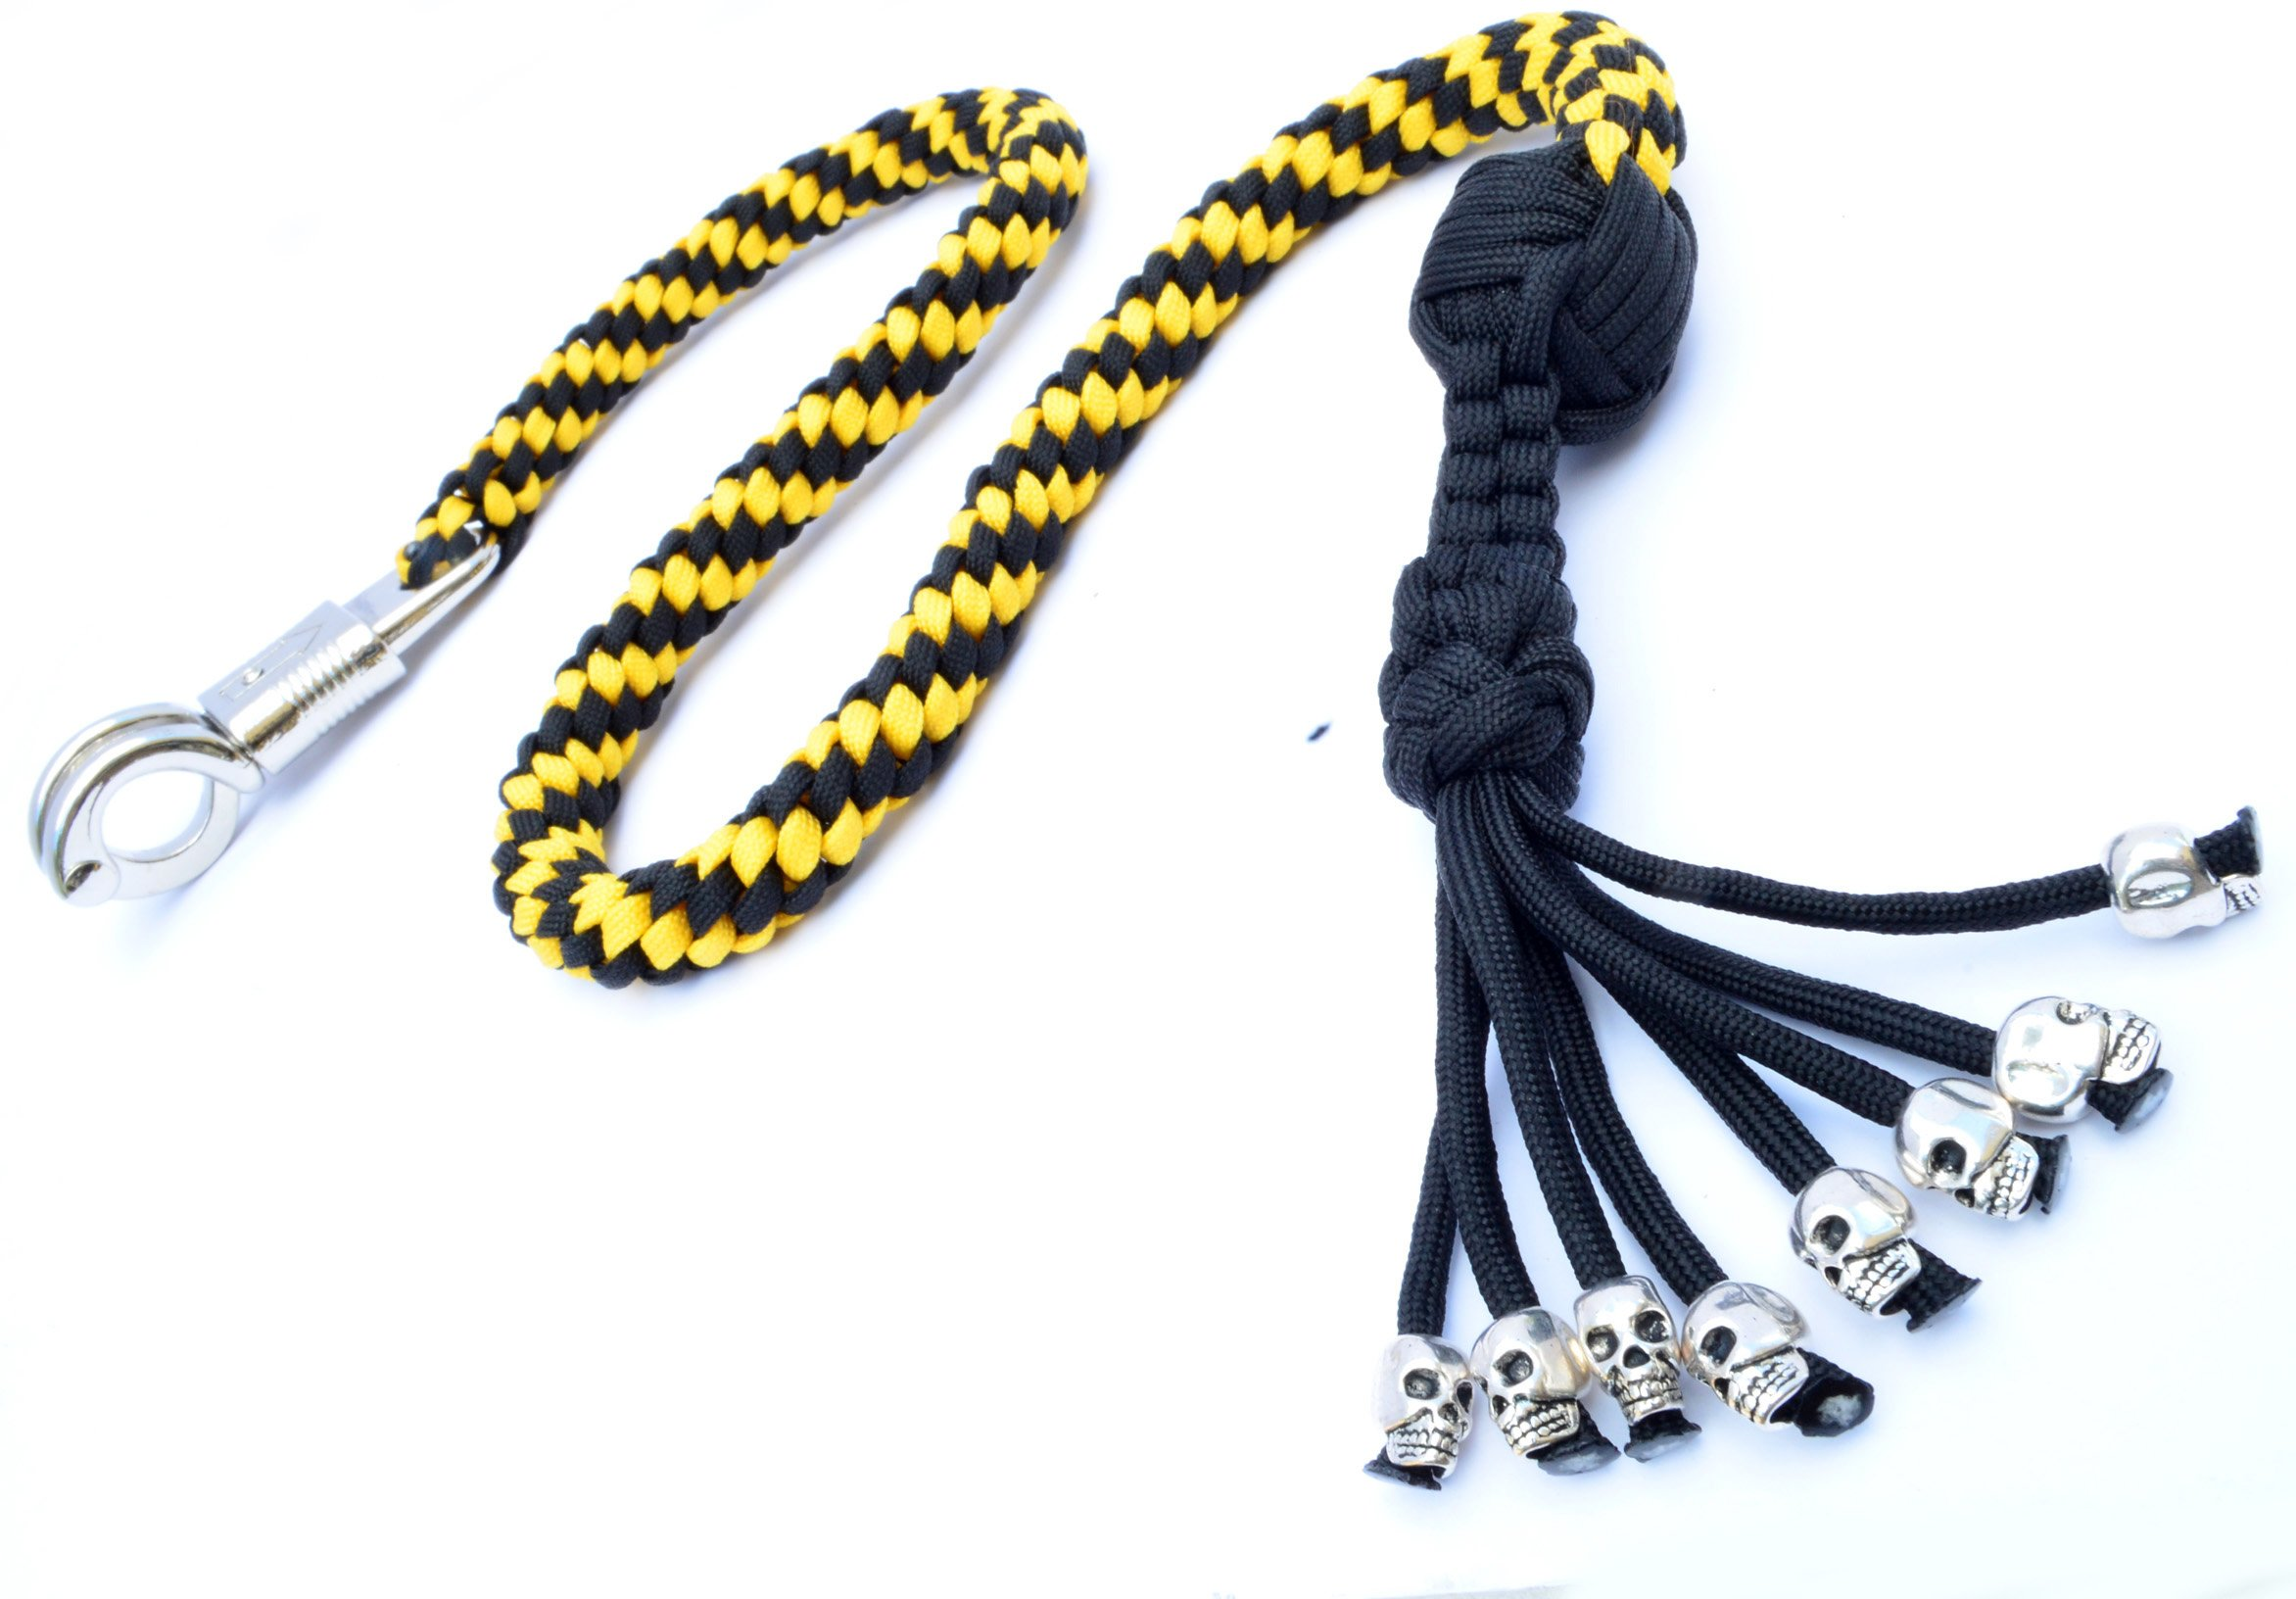 550 Paracord Motorcycle Whip Get Back whip Ball & Skulls 36'' Rope - Yellow / Black